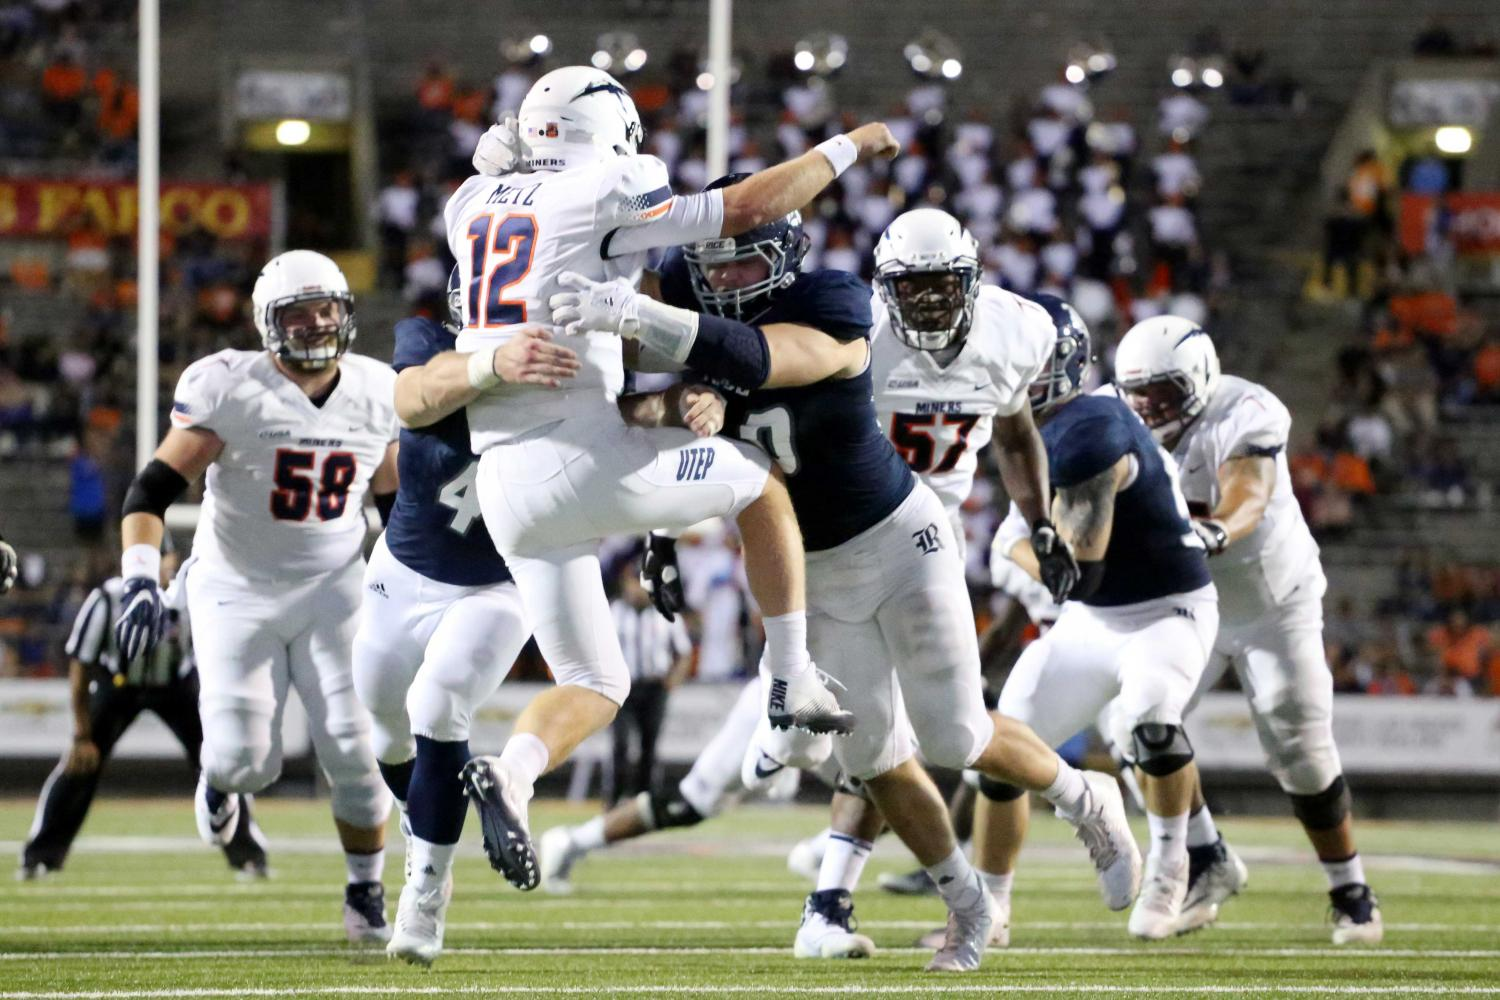 Miners lose physical battle to Rice in home opener